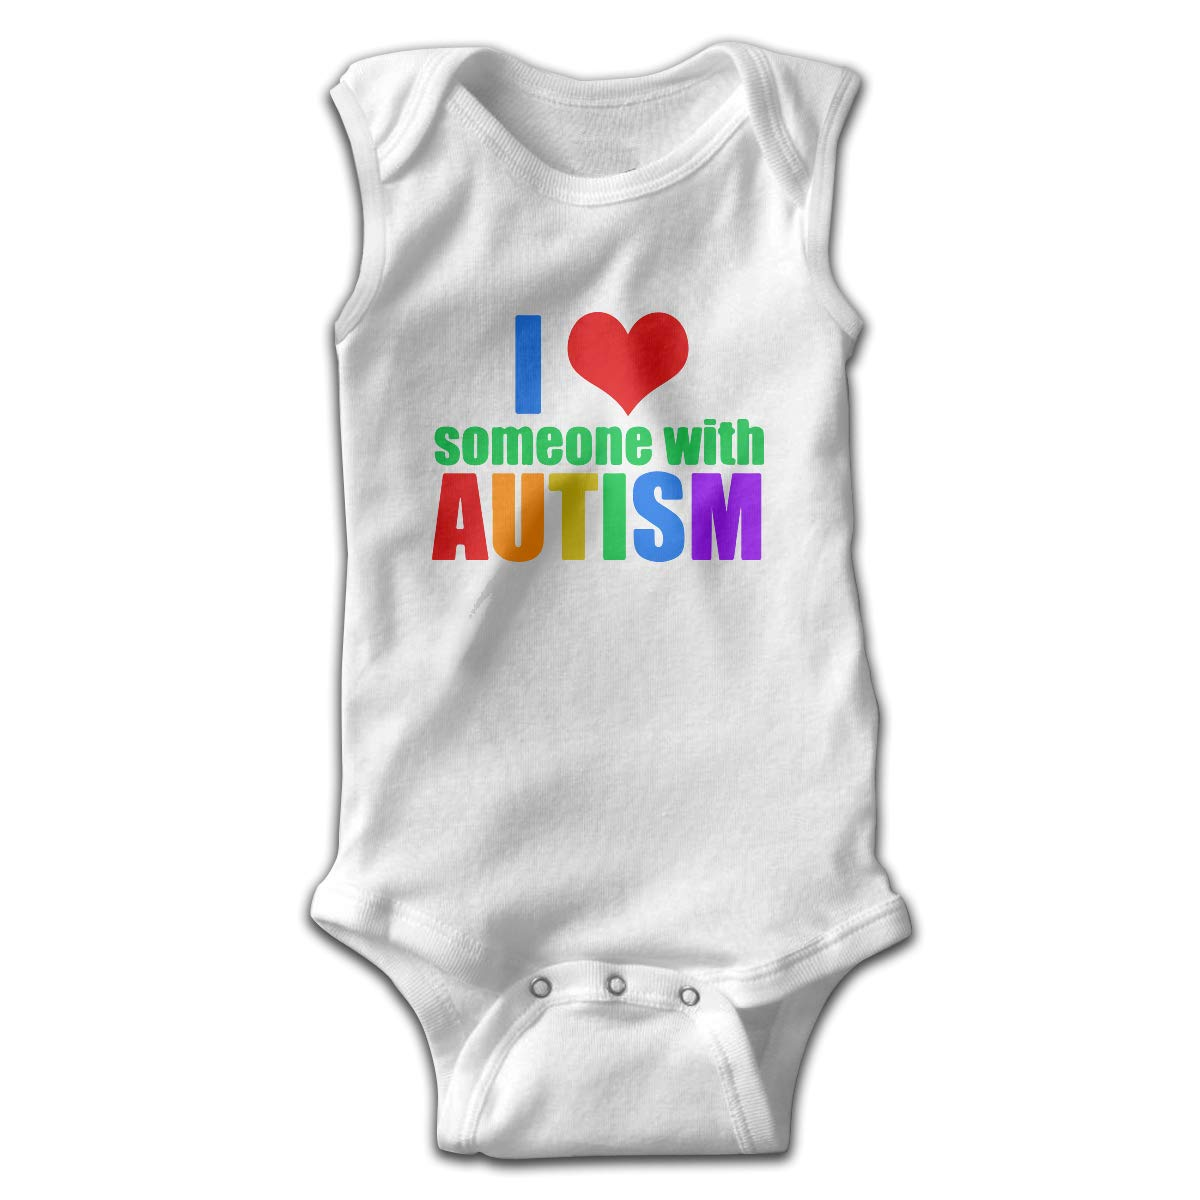 I Love Someone with Autism Printed Newborn Toddler Baby Sleeveless Bodysuits Coverall Jumpsuit